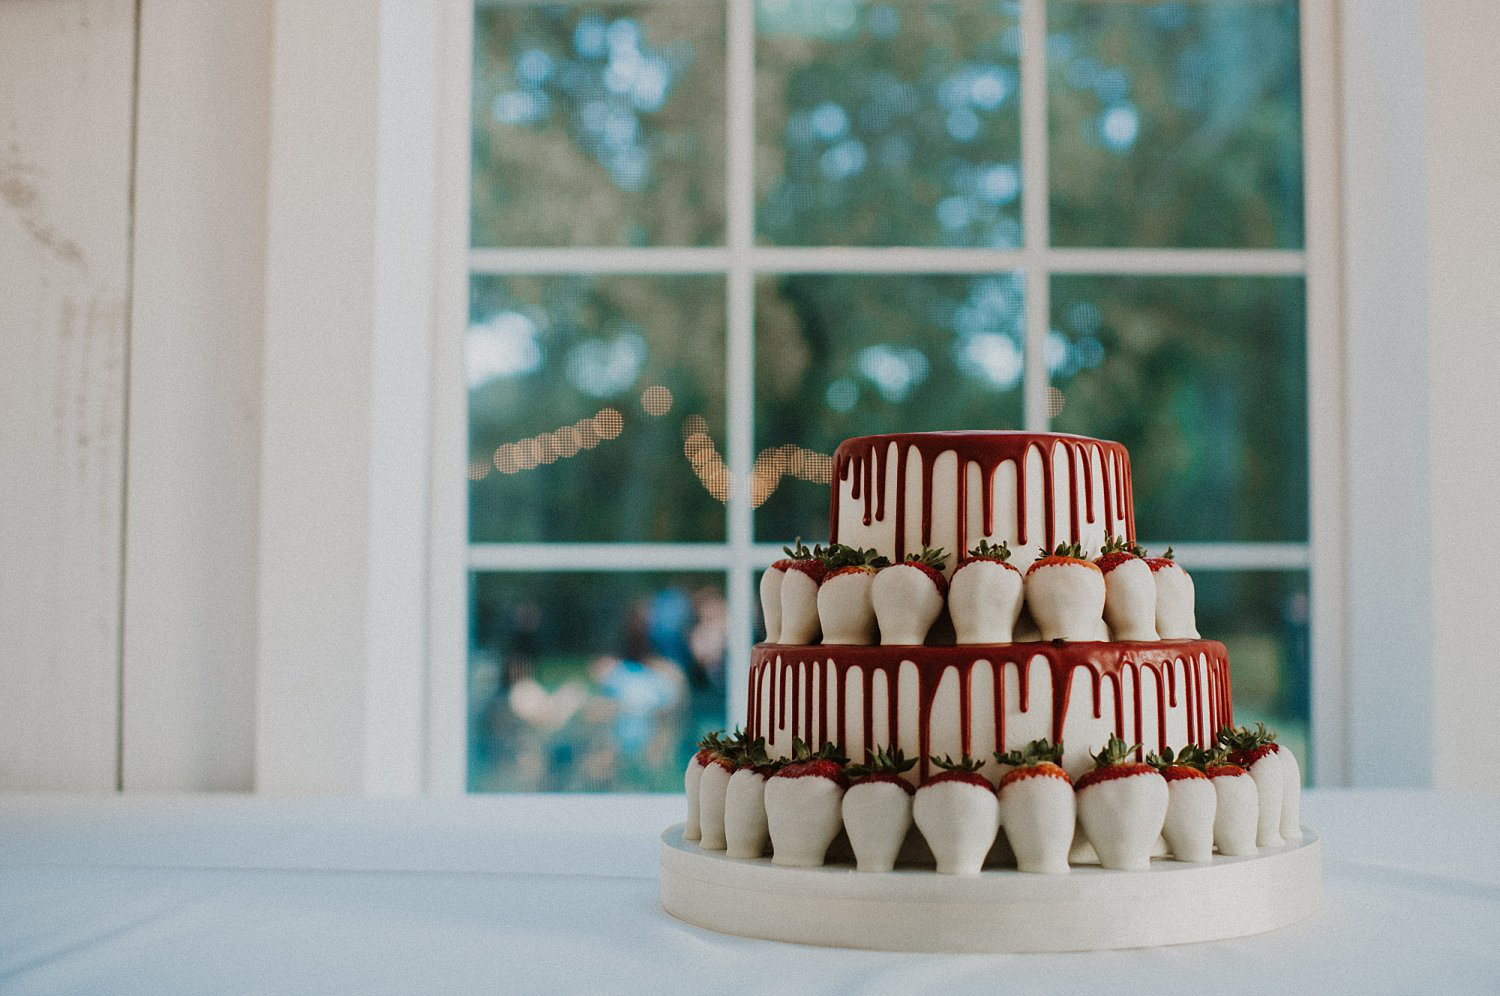 White and red groom drip cake with white chocolate strawberries